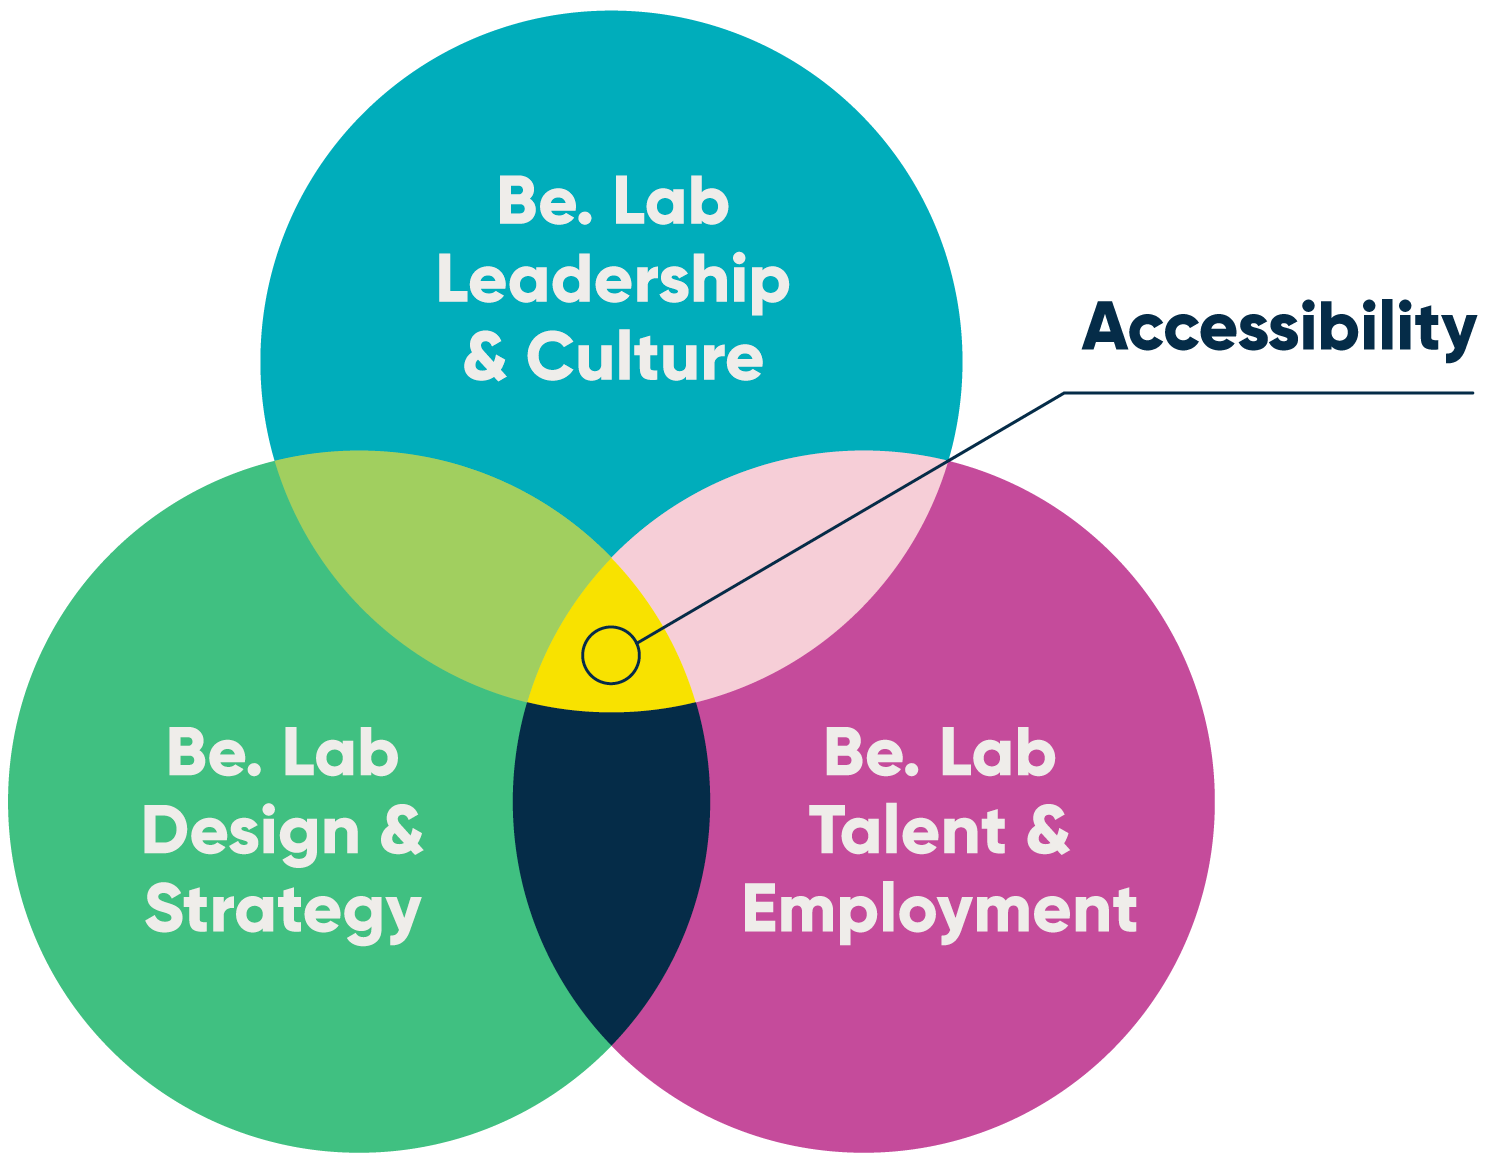 3 circles overlap in a venn diagram- each circle reads as follows: Be. Lab Leadership and Culture, Be. Lab Design and Strategy, Be. Lab Talent and Employment. The part of the diagram where the three circles overlap is called Accessibility.